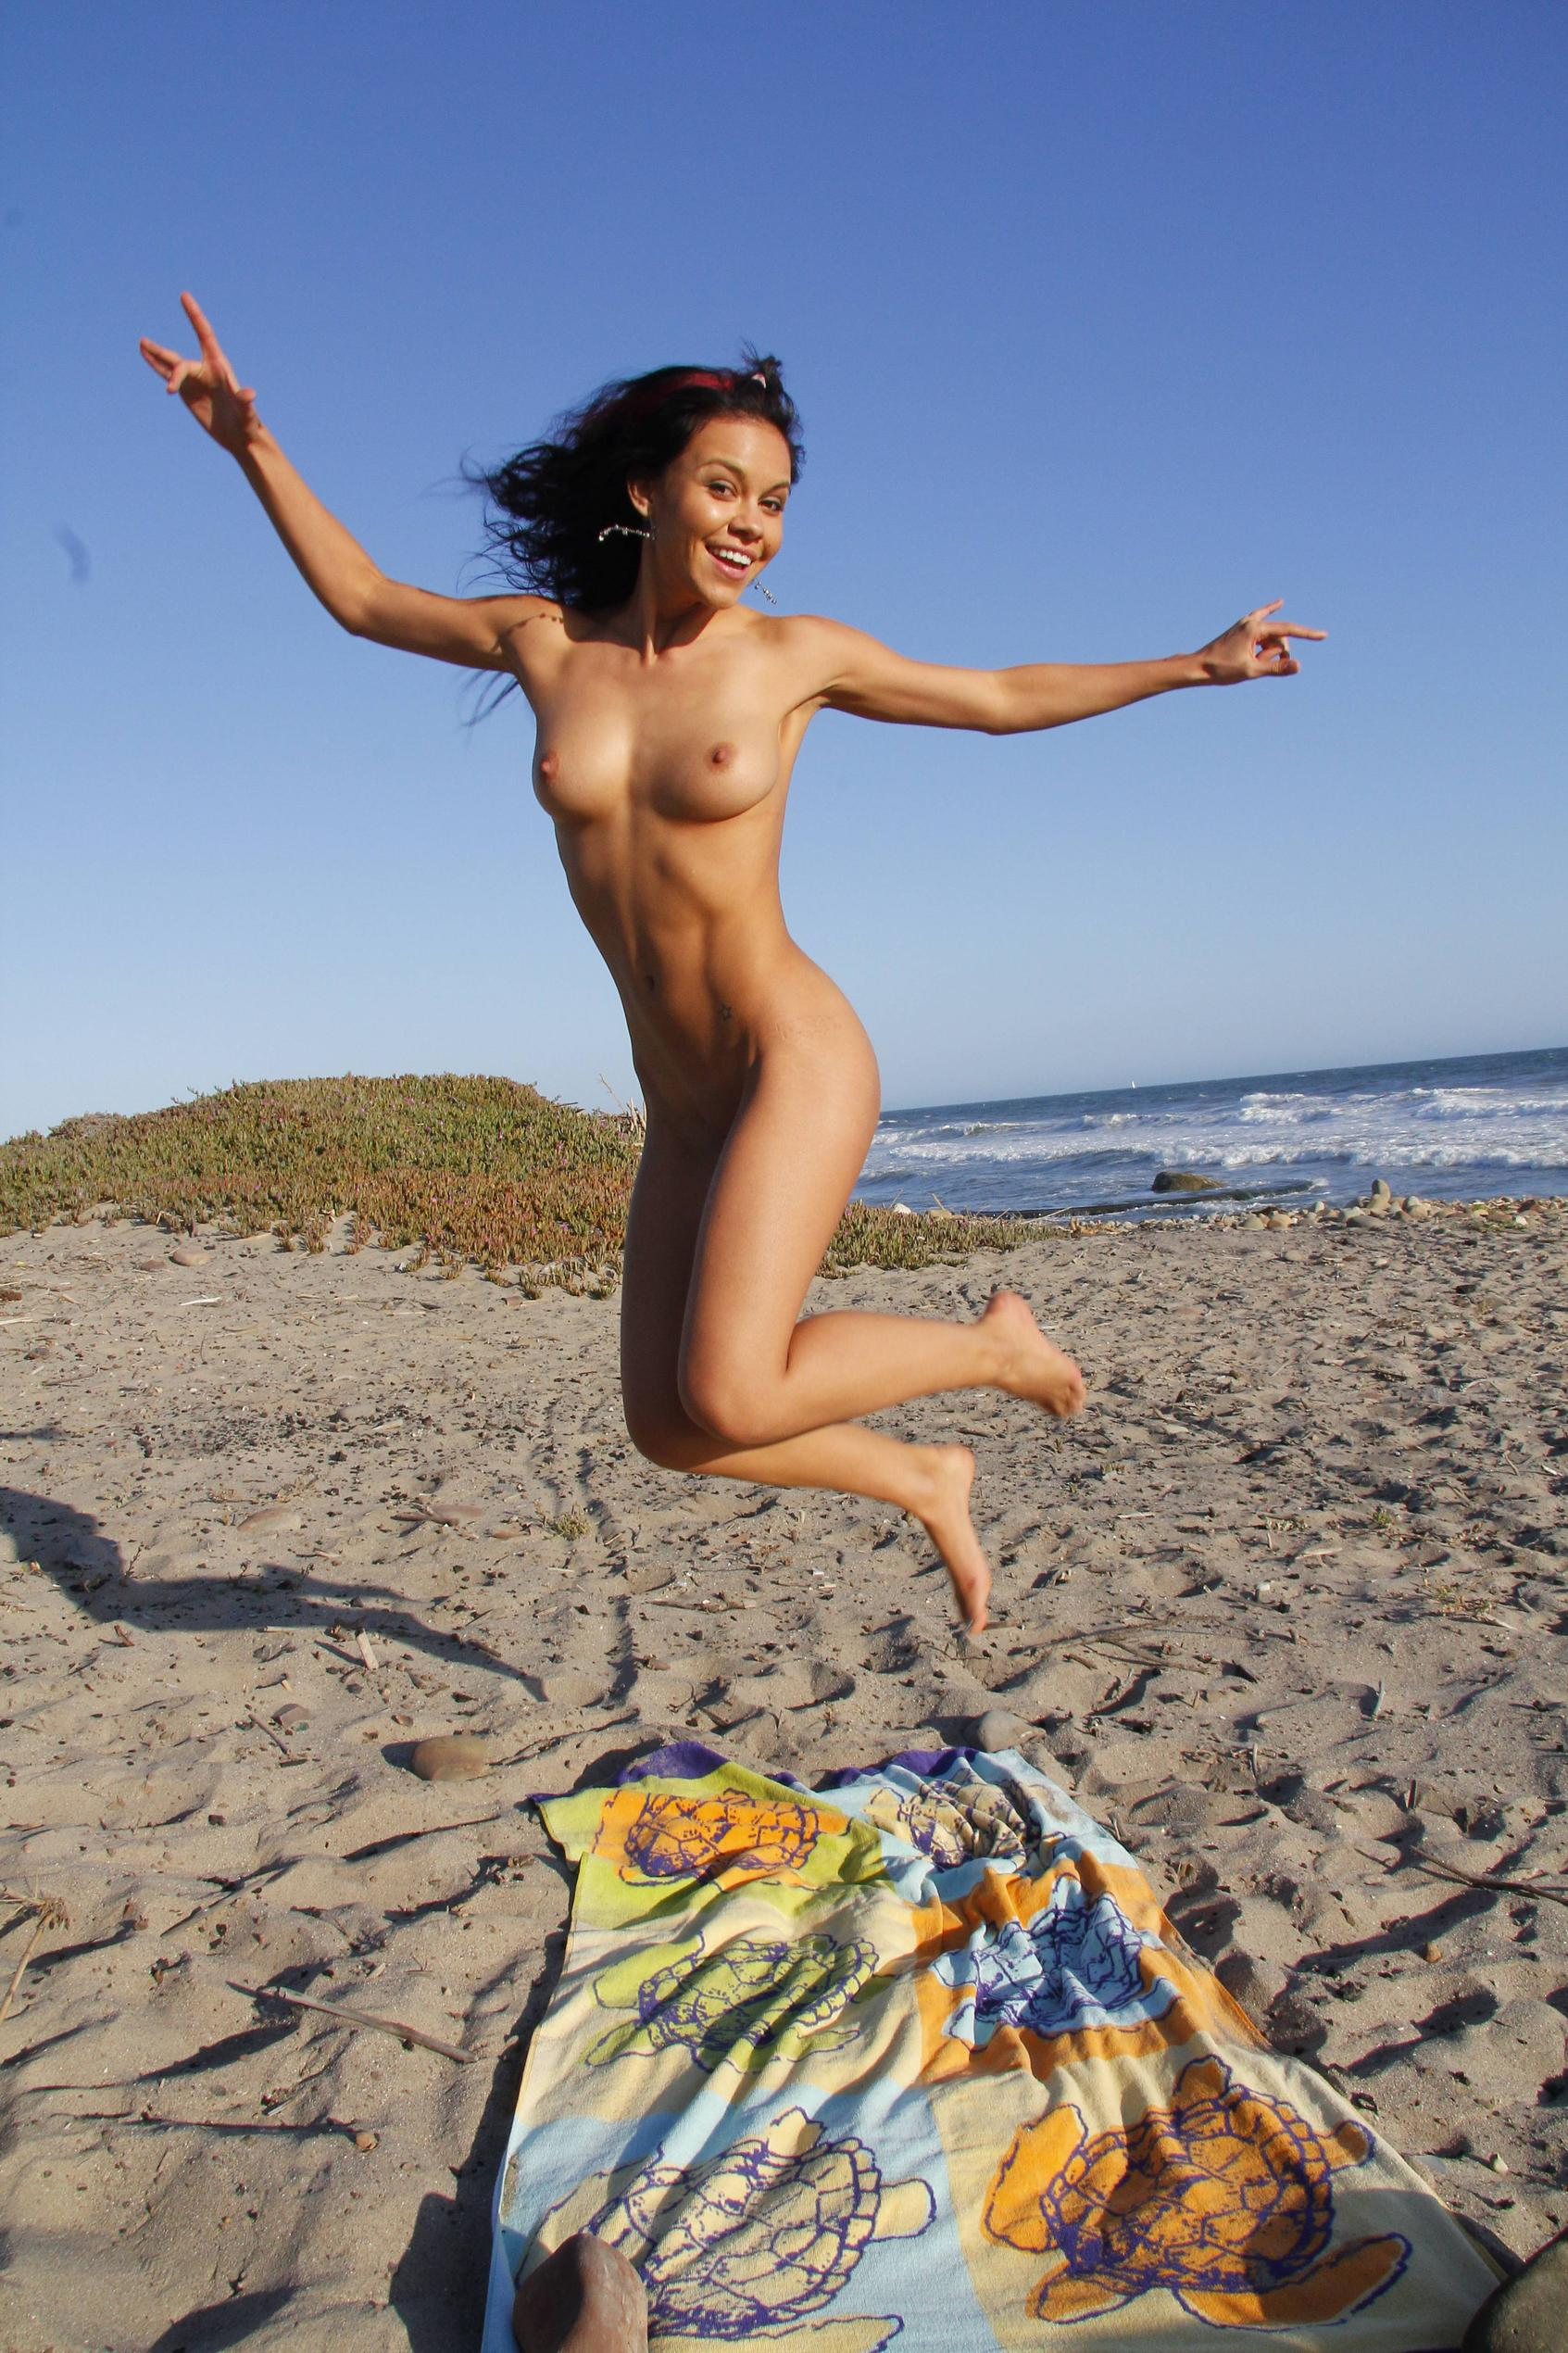 Nudist beach is full of naked happy girls